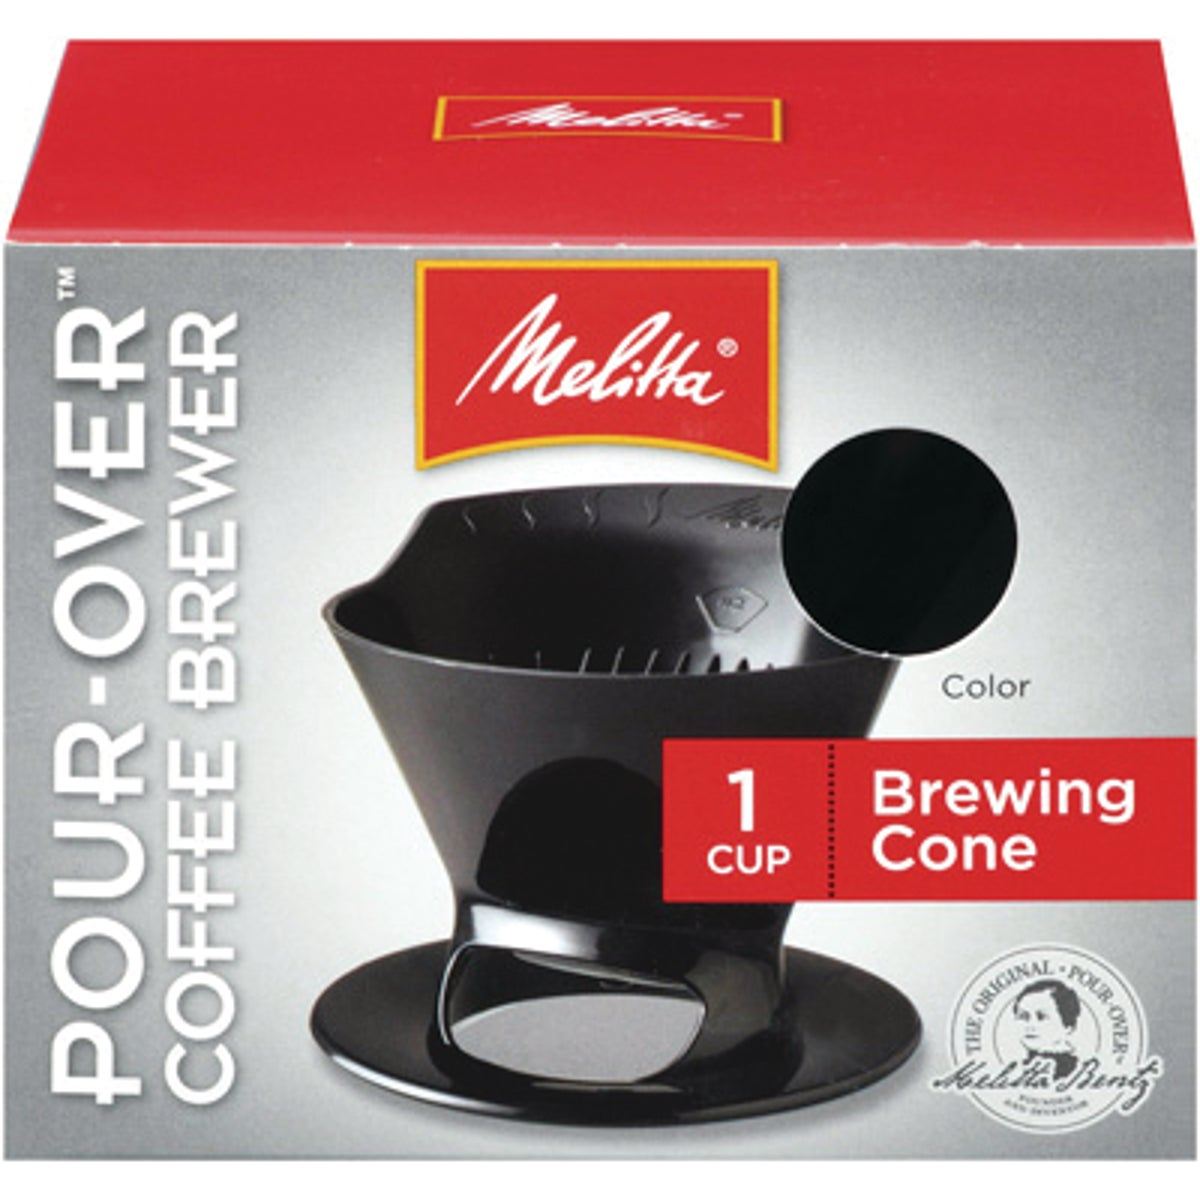 1 CUP CONE COFFEE BREWER - 640007 by Melitta U S A Inc